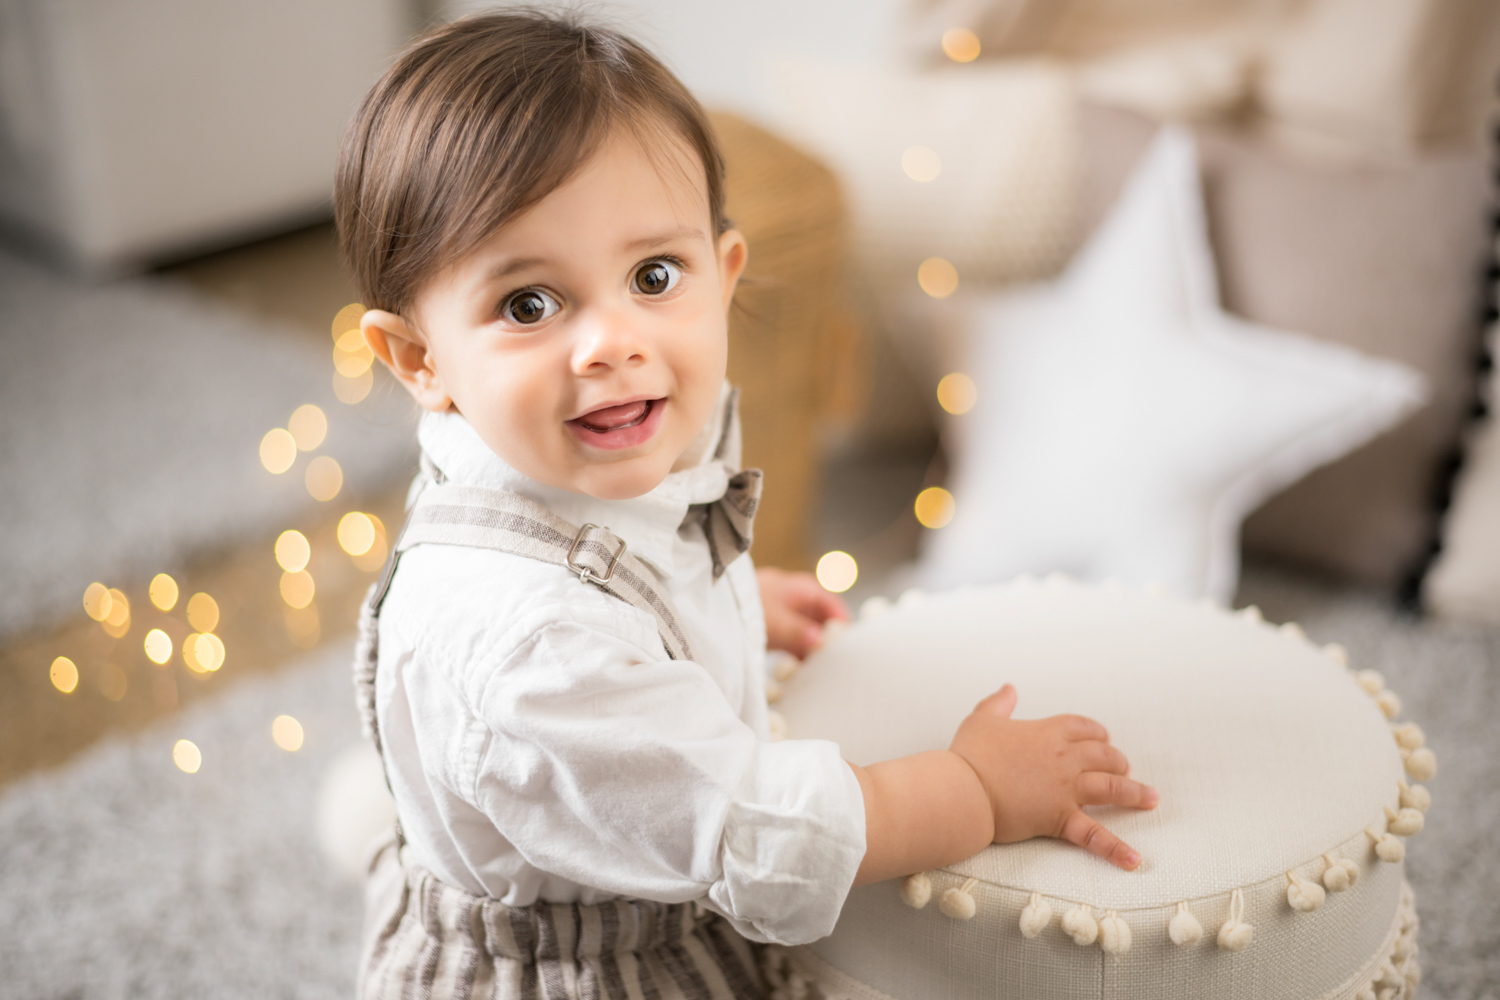 Baby stands in front of string lights and star pillows and smiles.